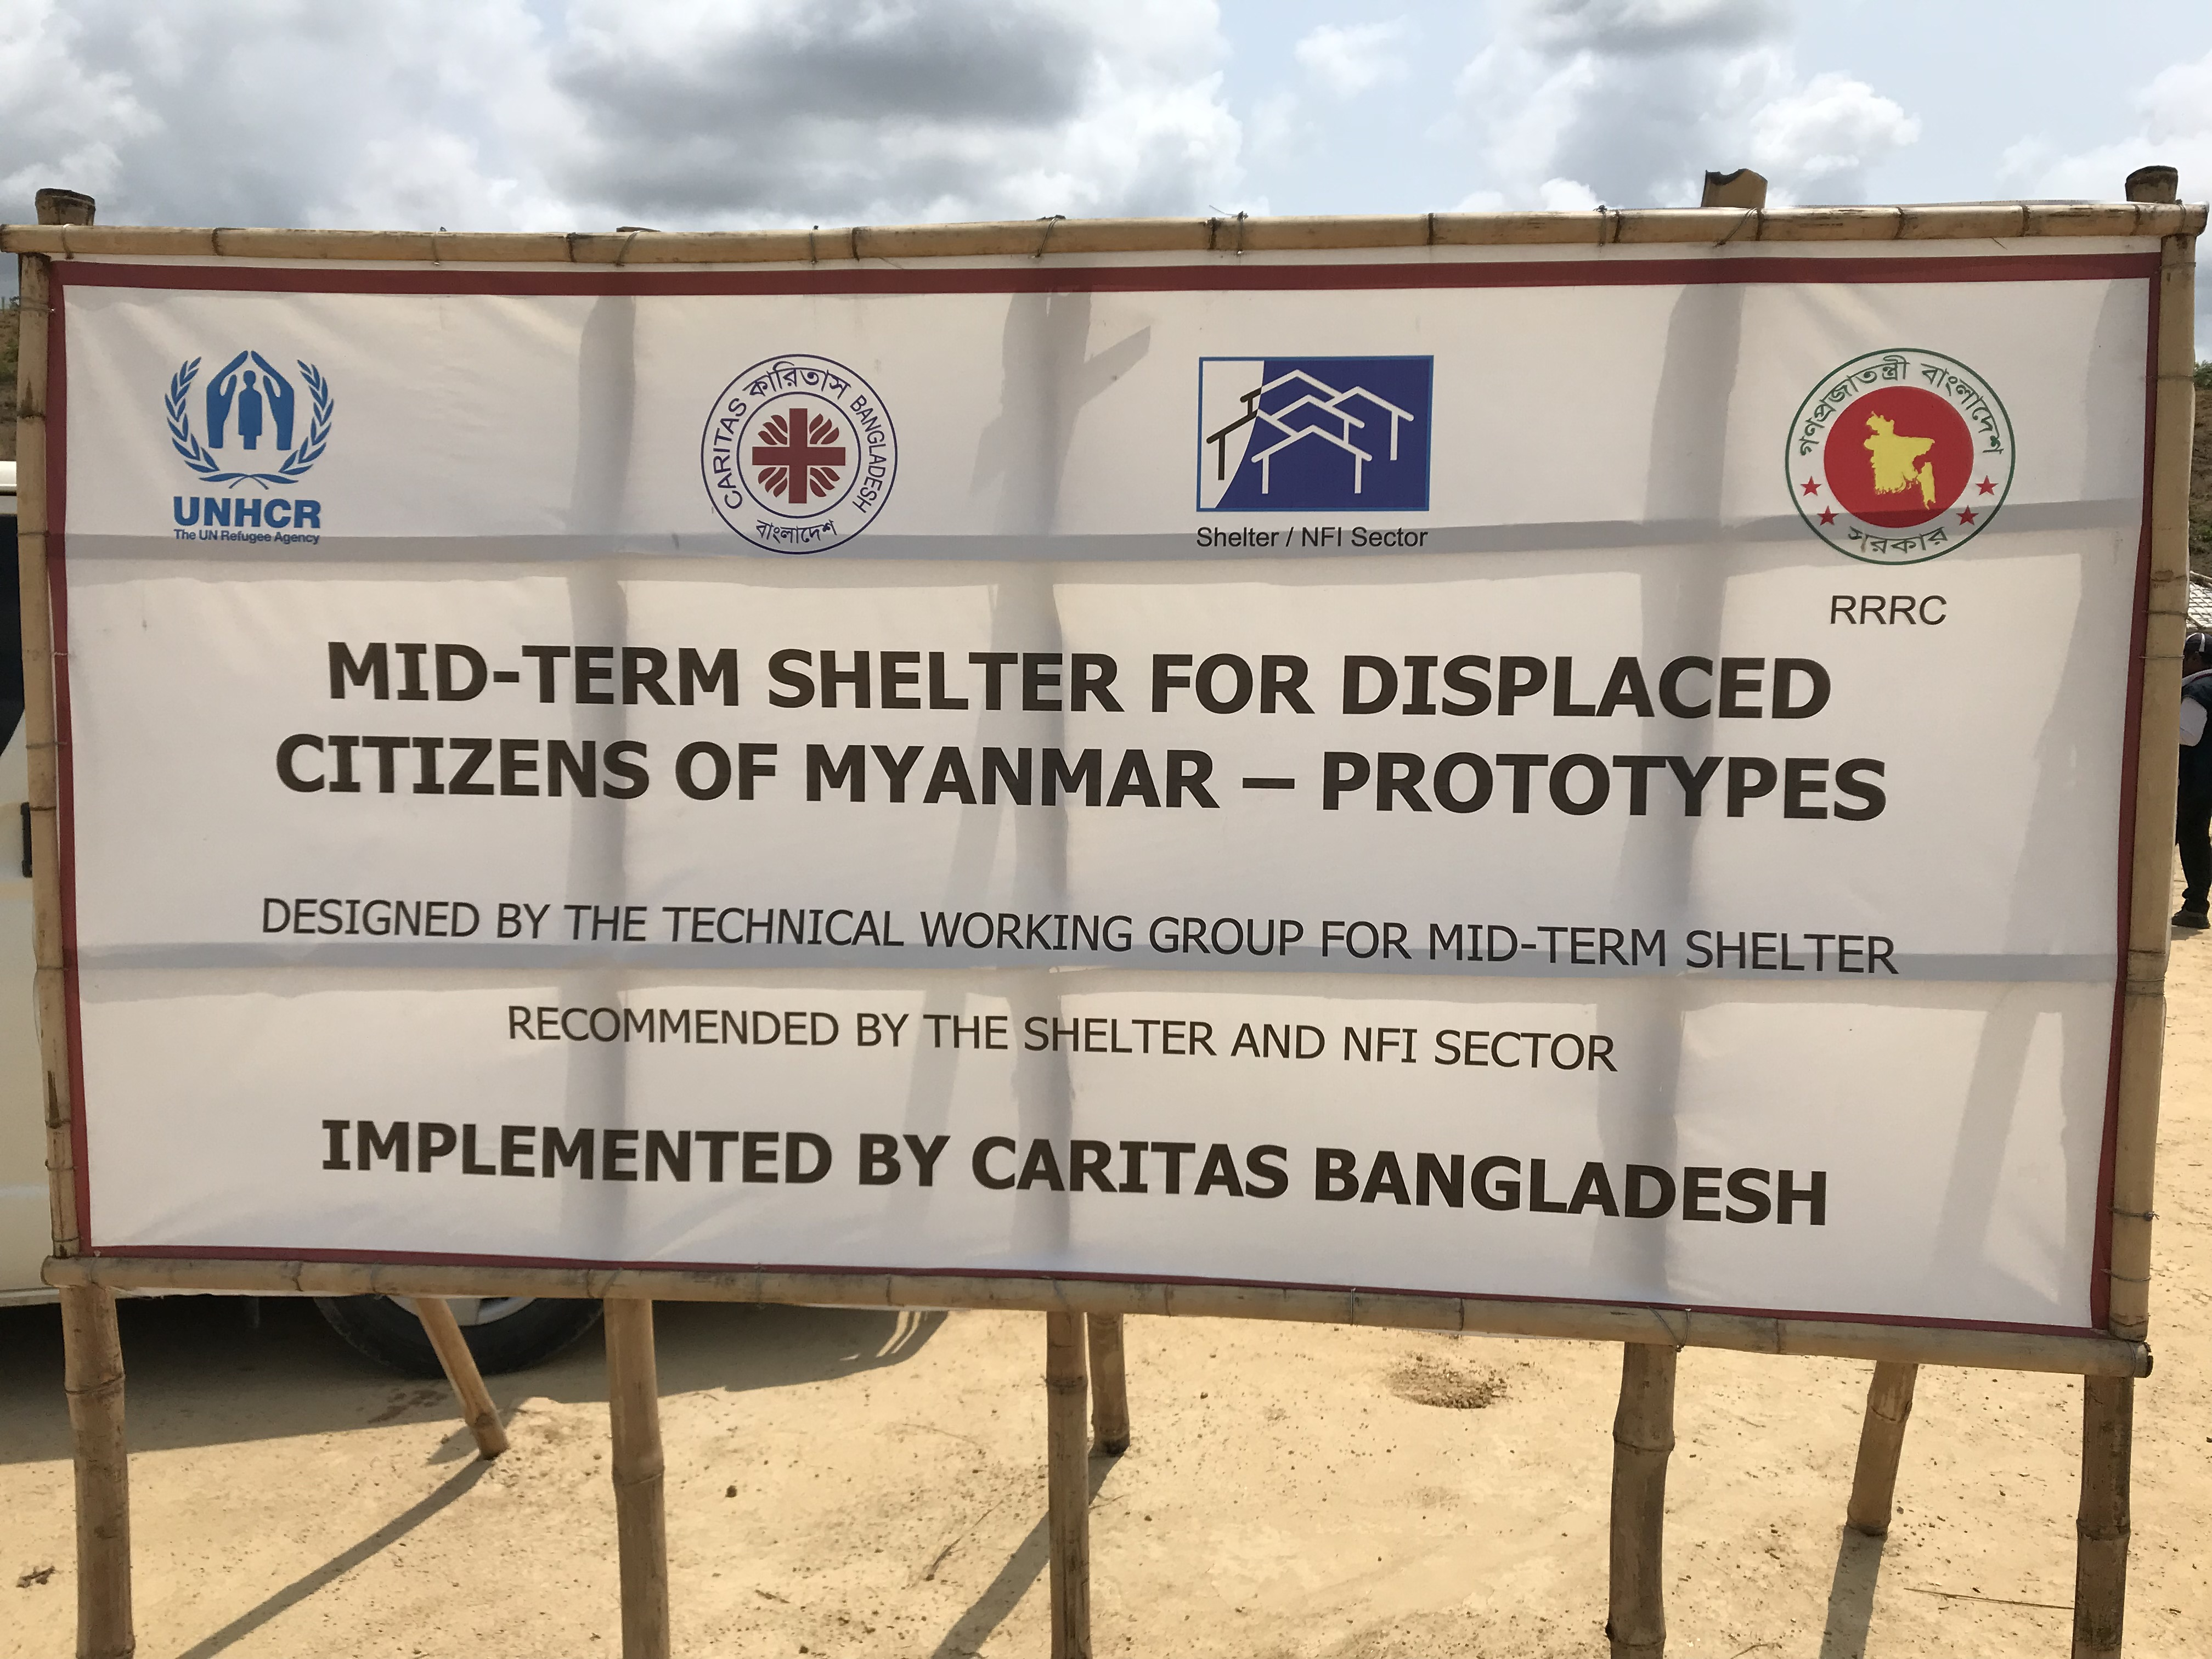 Caritas Bangladesh oversees a large campsite with over 30,000 shelters.